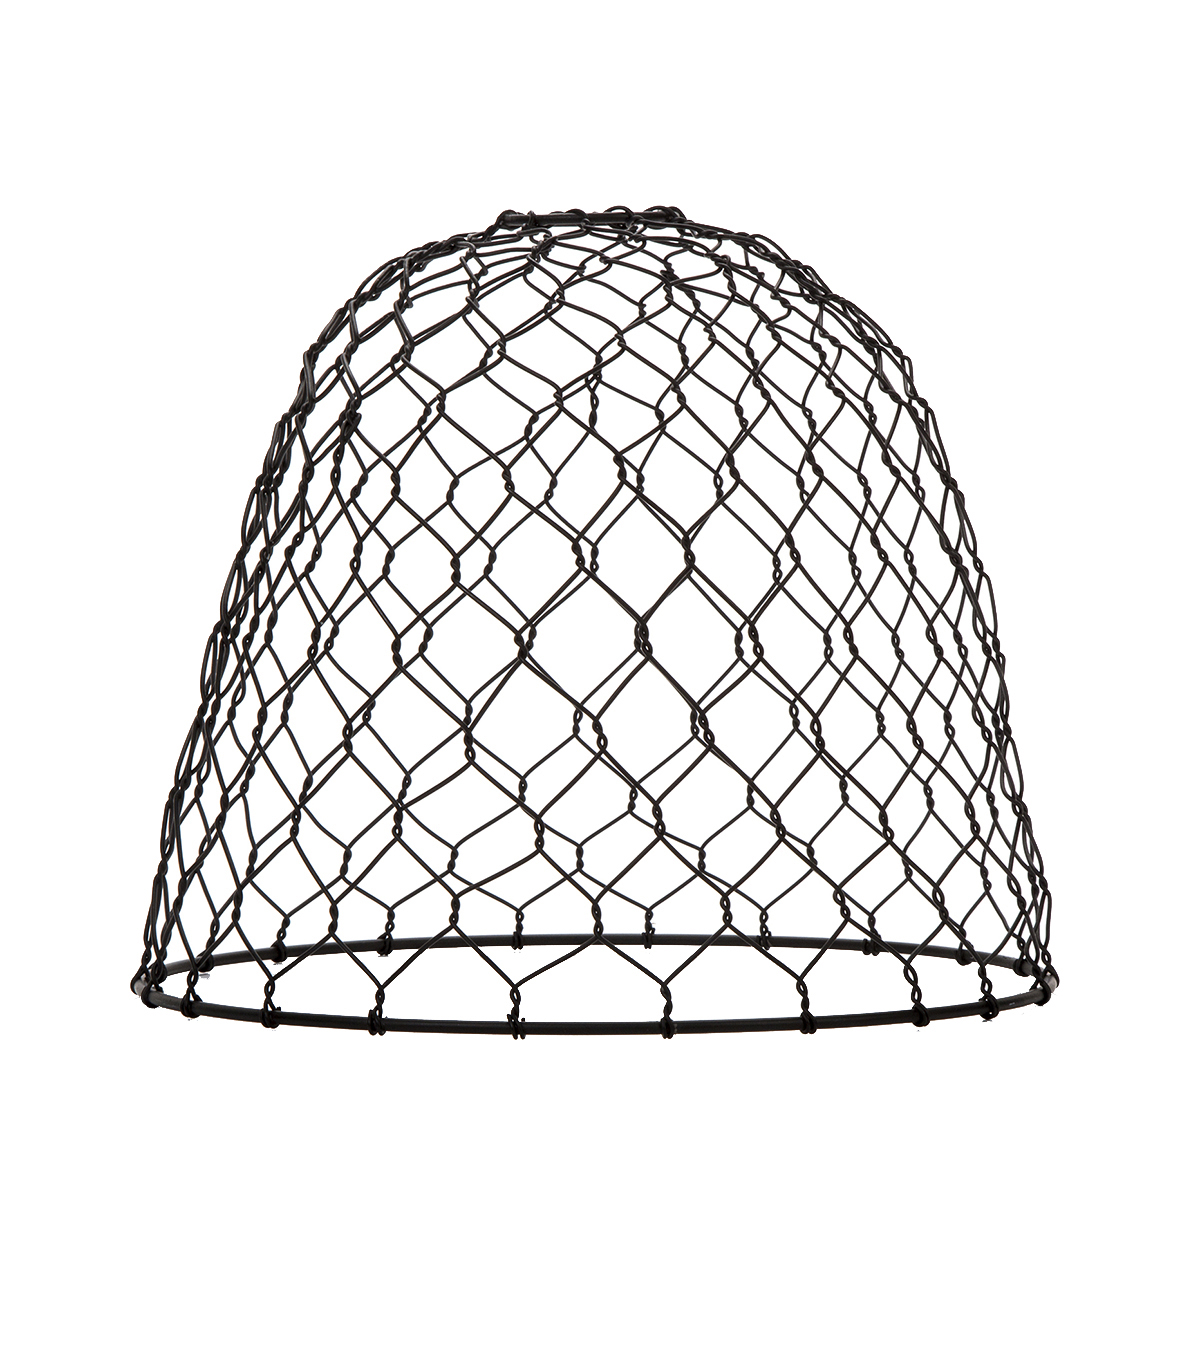 Darice® Metal Chickenwire Dome Lampshade-Black